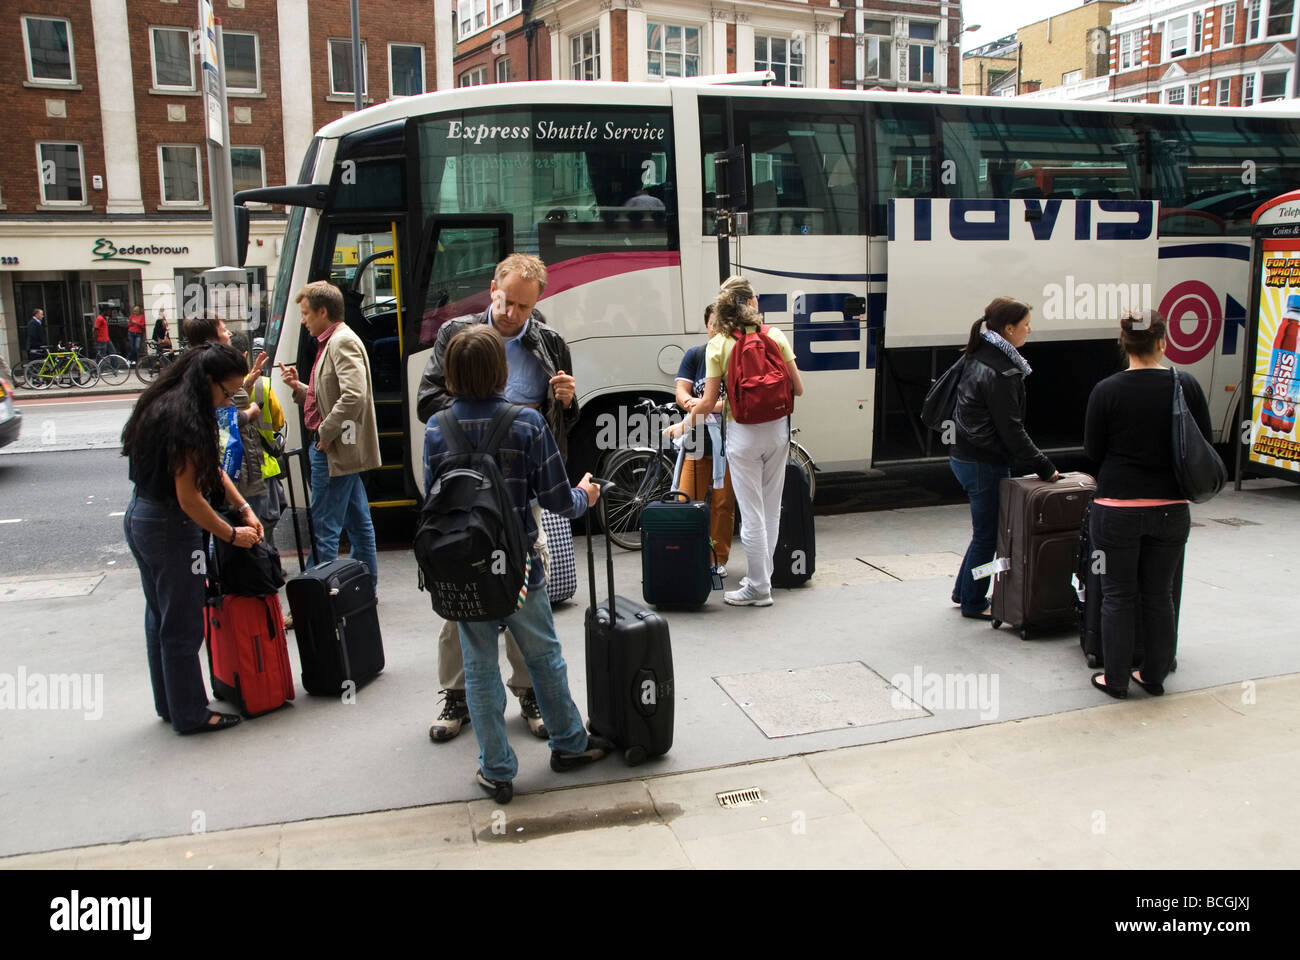 Liverpool Street Passengers waiting to take a Terravision coach to Stanstead airport - Stock Image